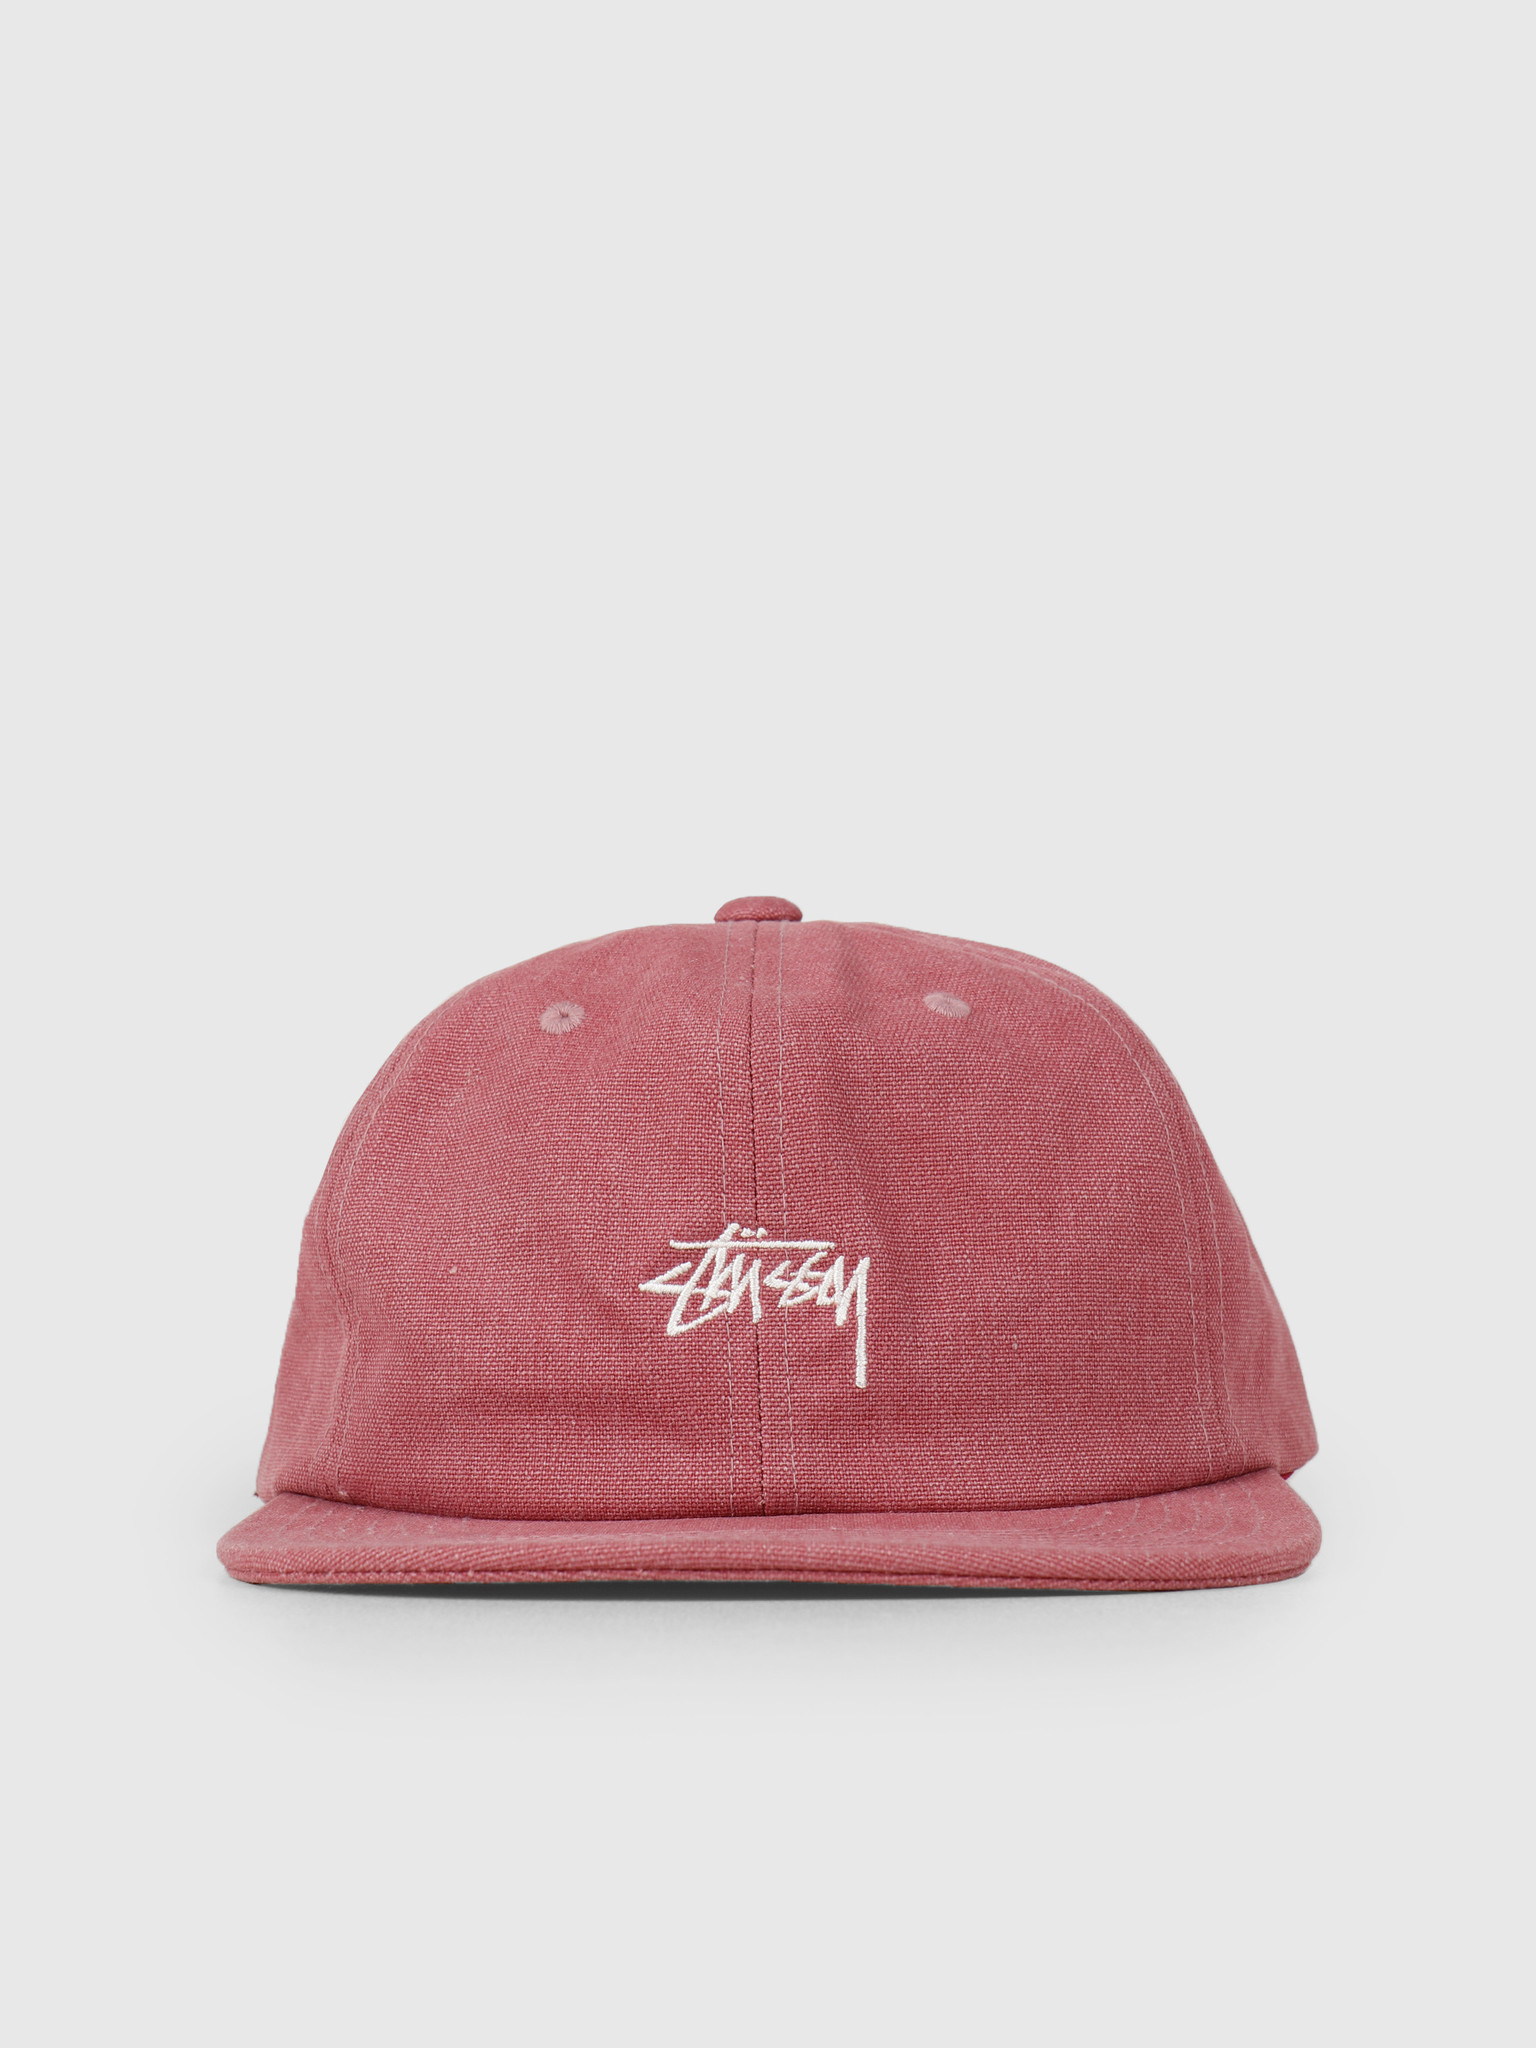 Stussy Stussy Stock Washed Canvas Cap Berry 0623